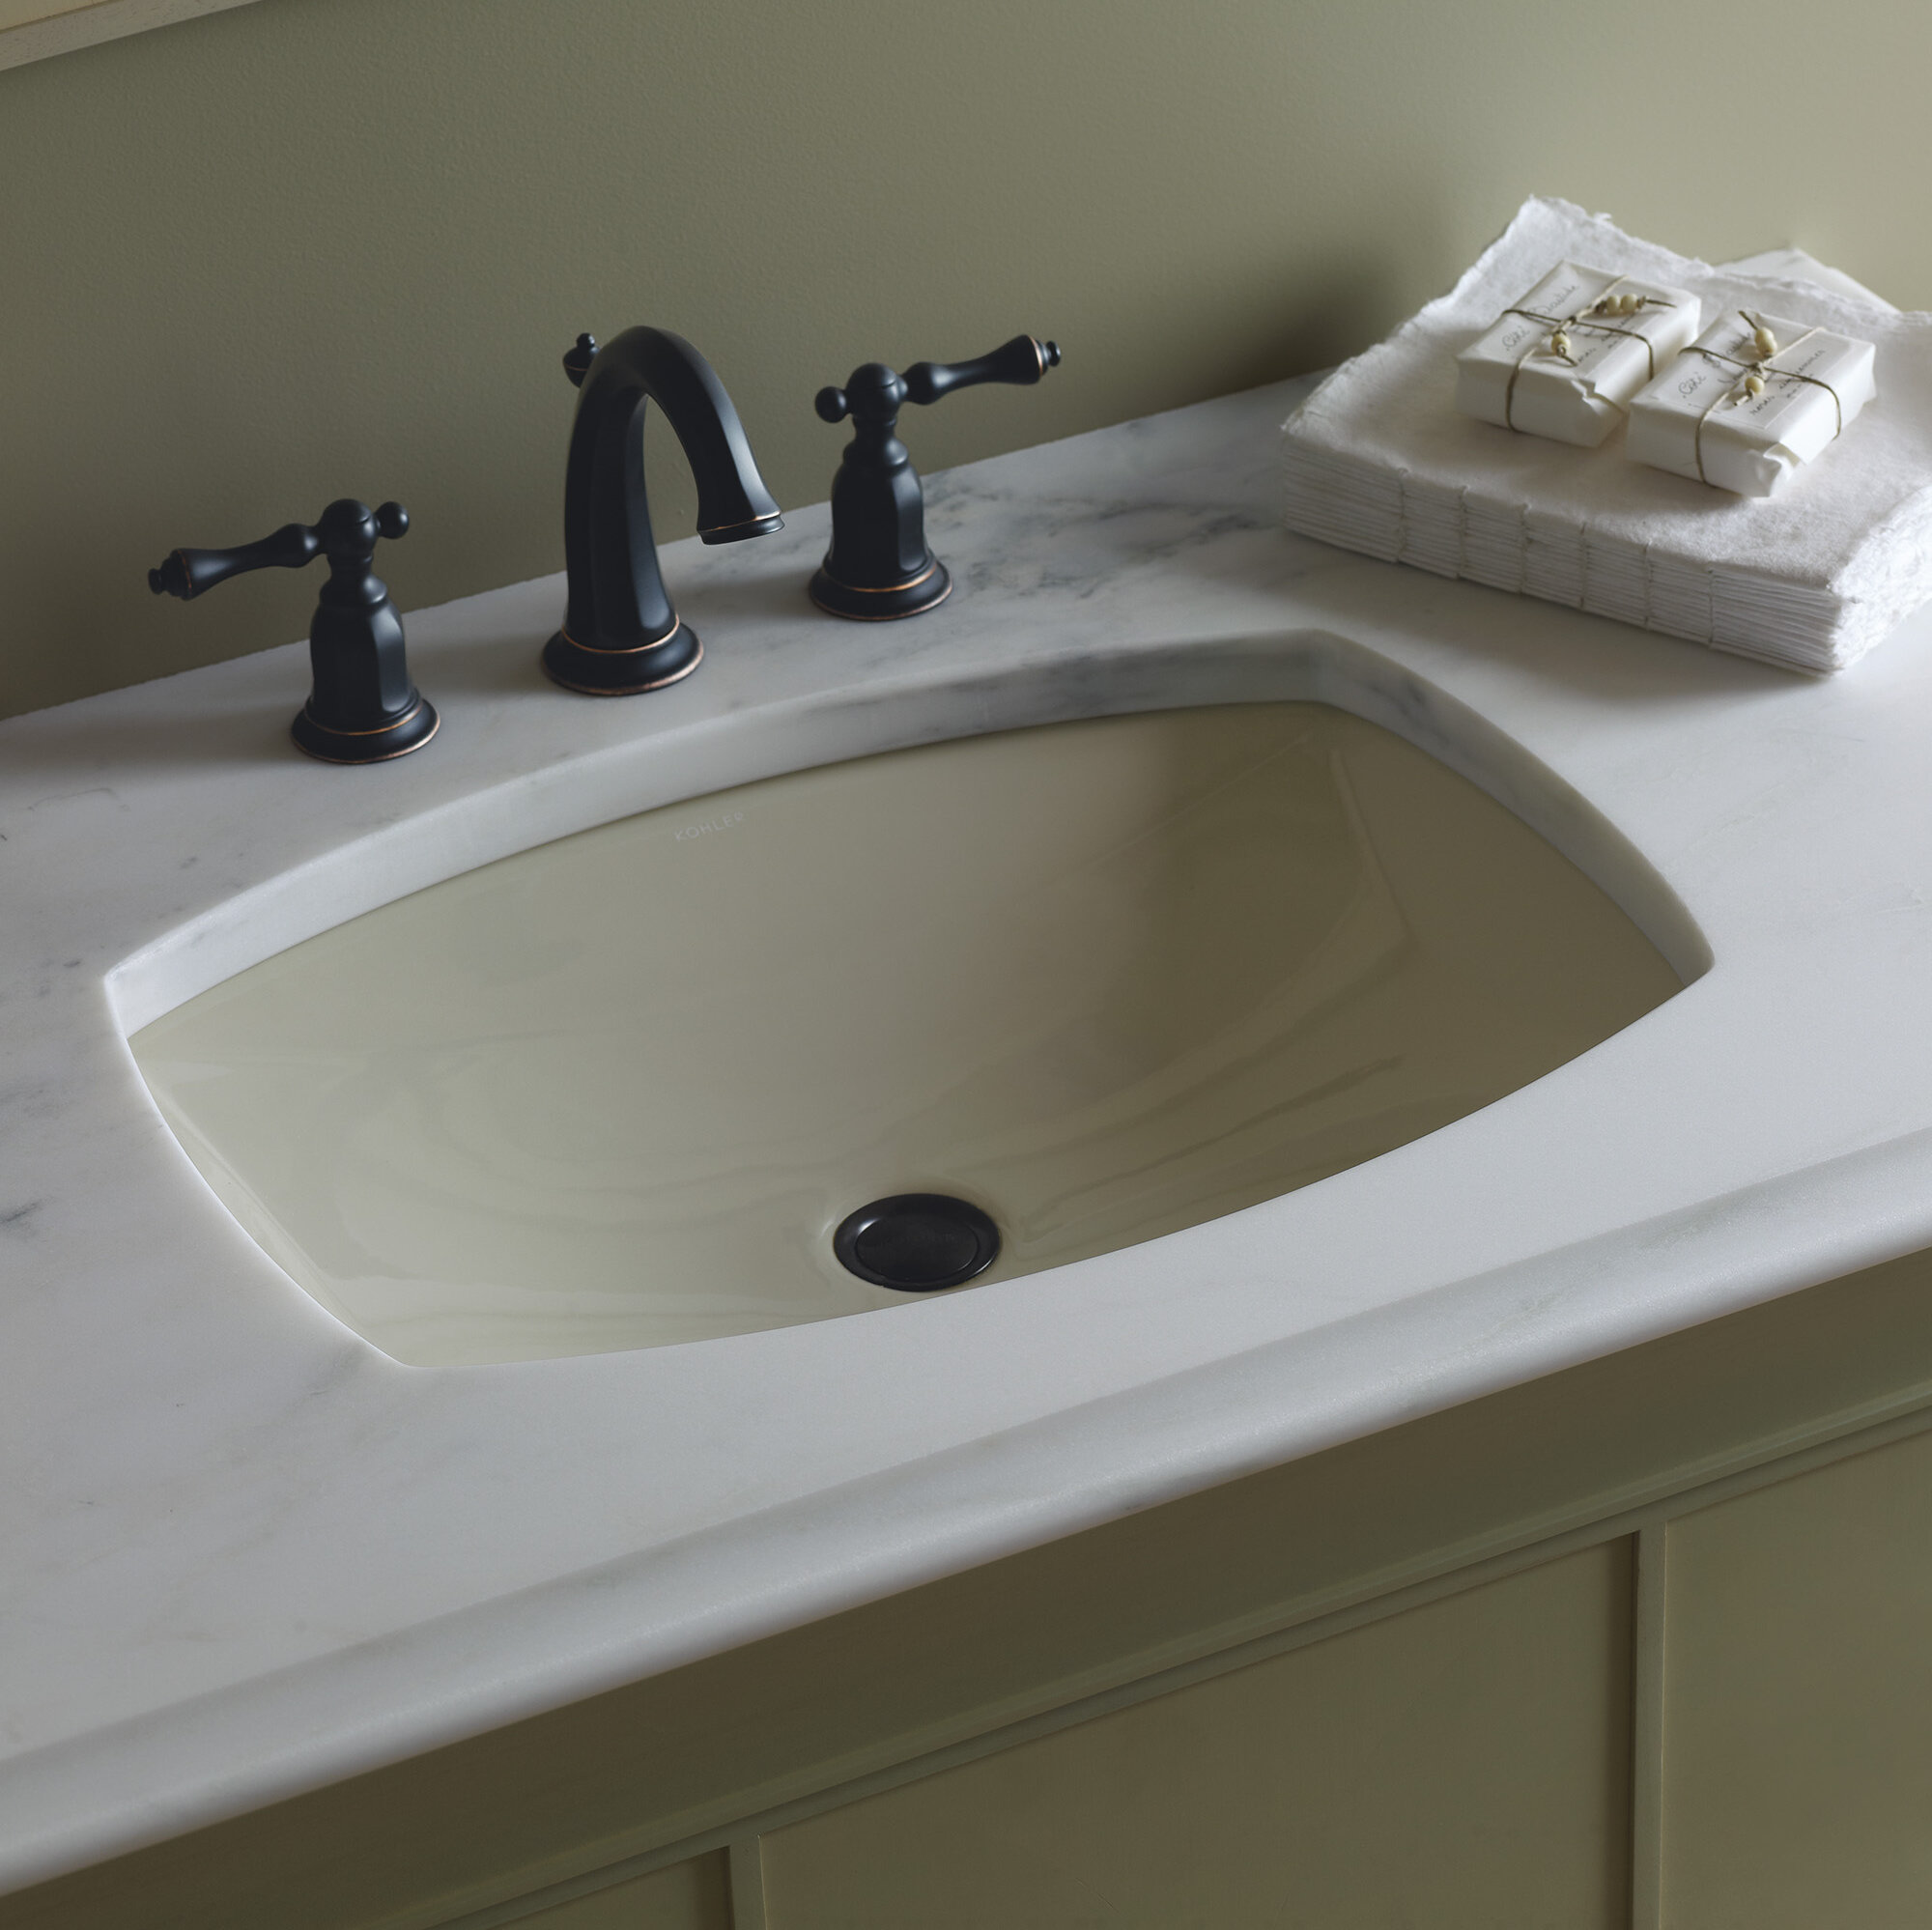 city countertop sink bathroom tanke and basins aet at products uk from units worktop basin